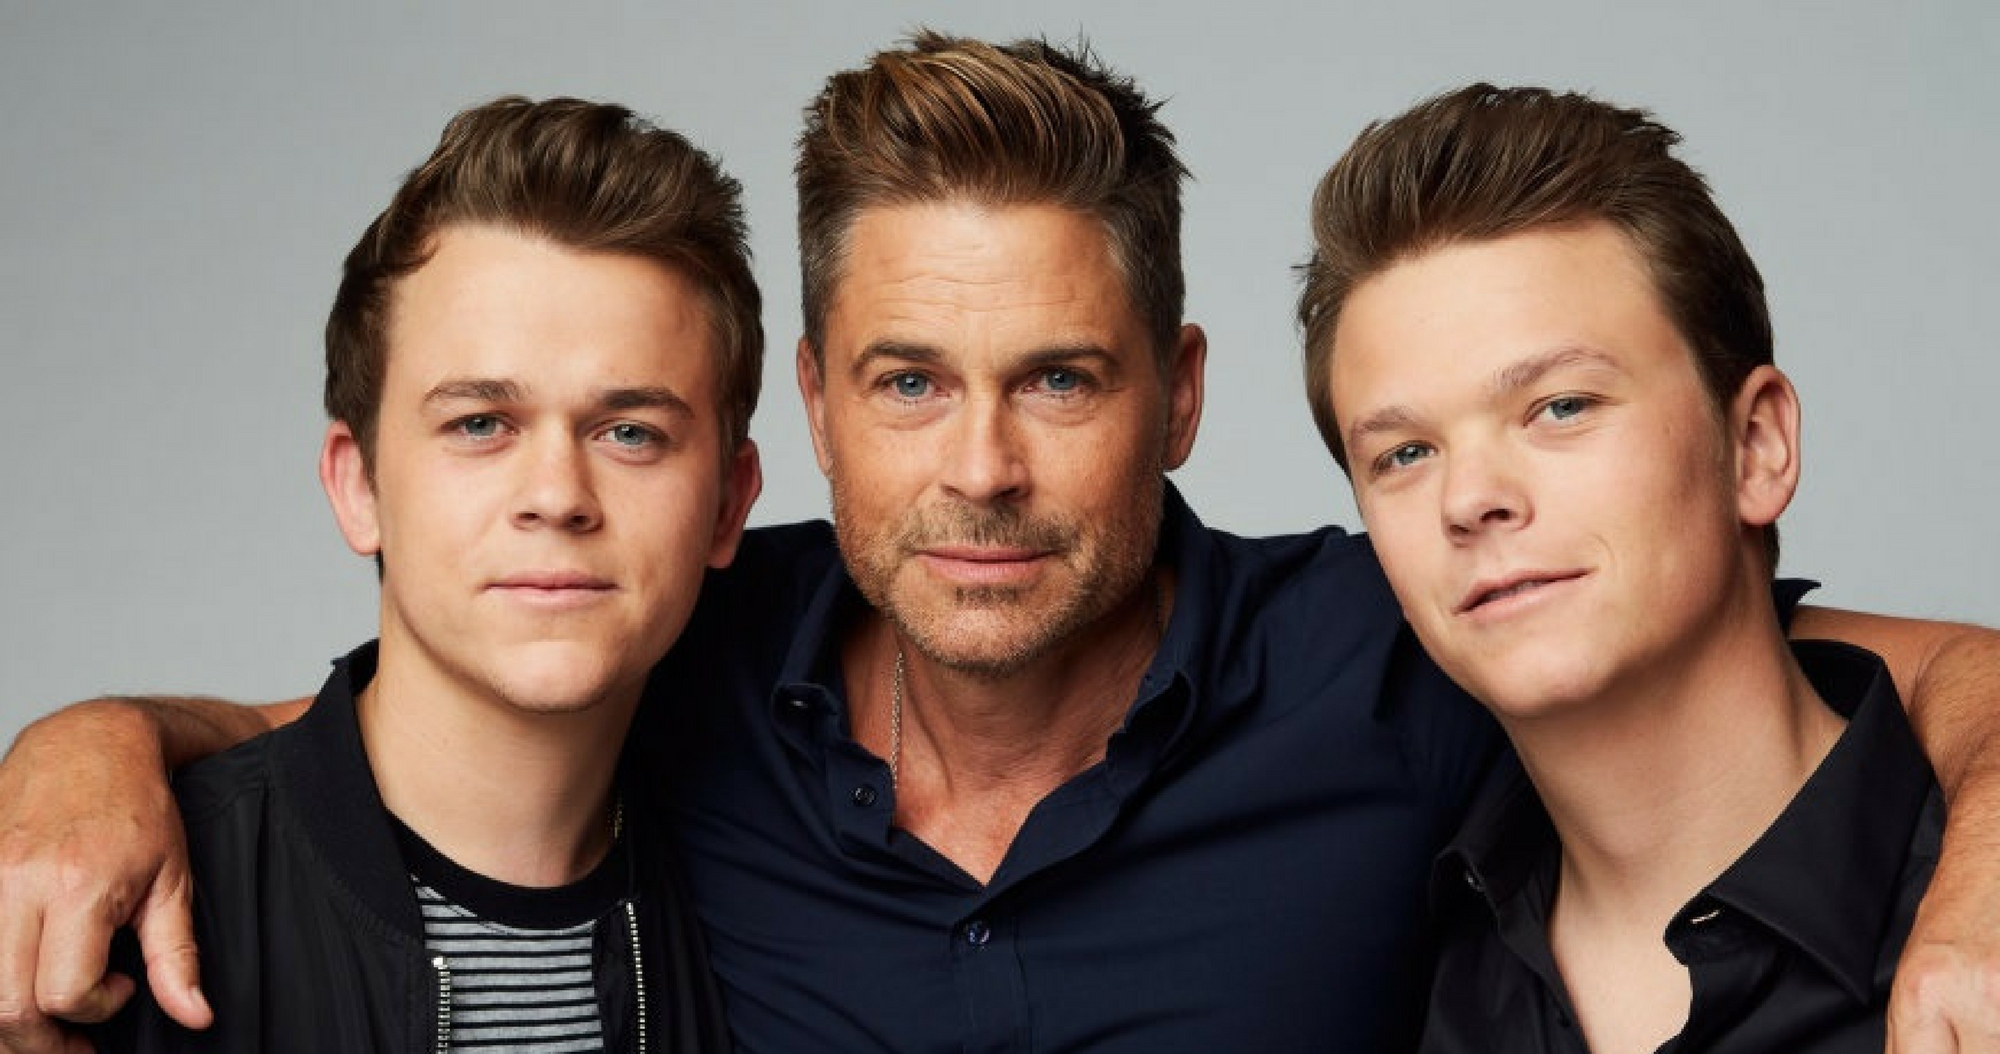 Rob Lowe And His Sons ...